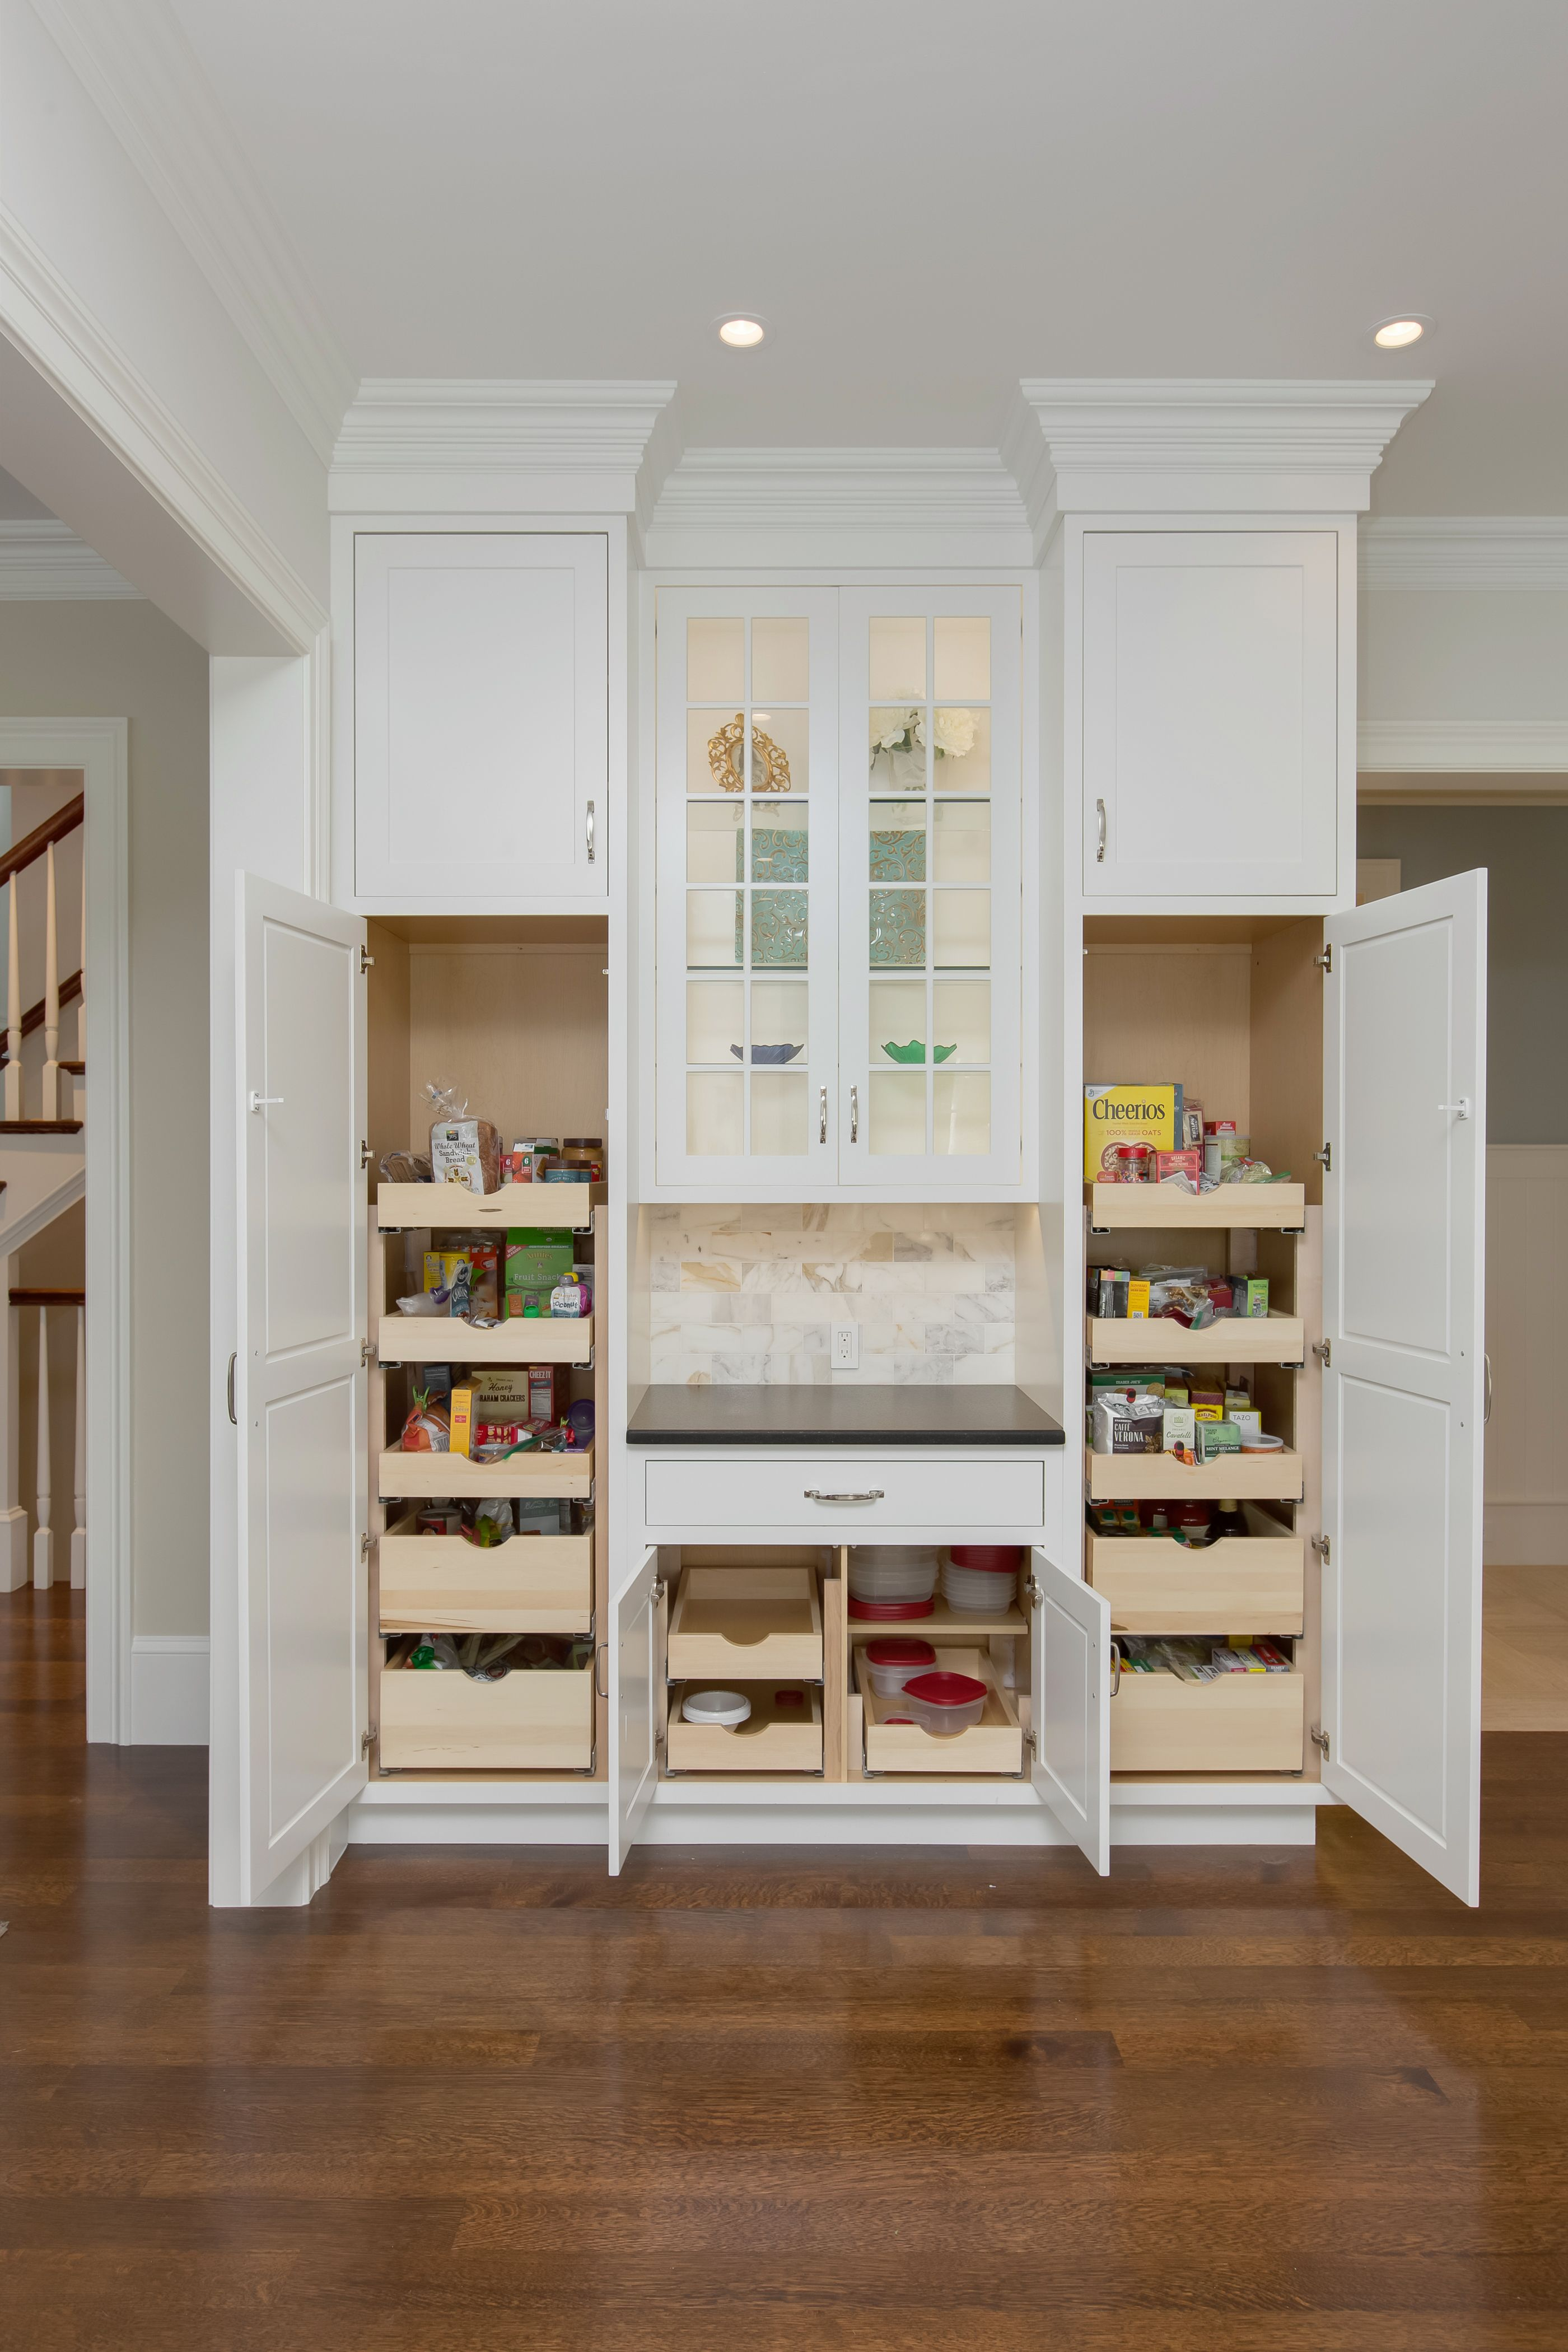 Kitchen Storage Pantry Cabinets With Pull Out Drawers And Crown Molding In